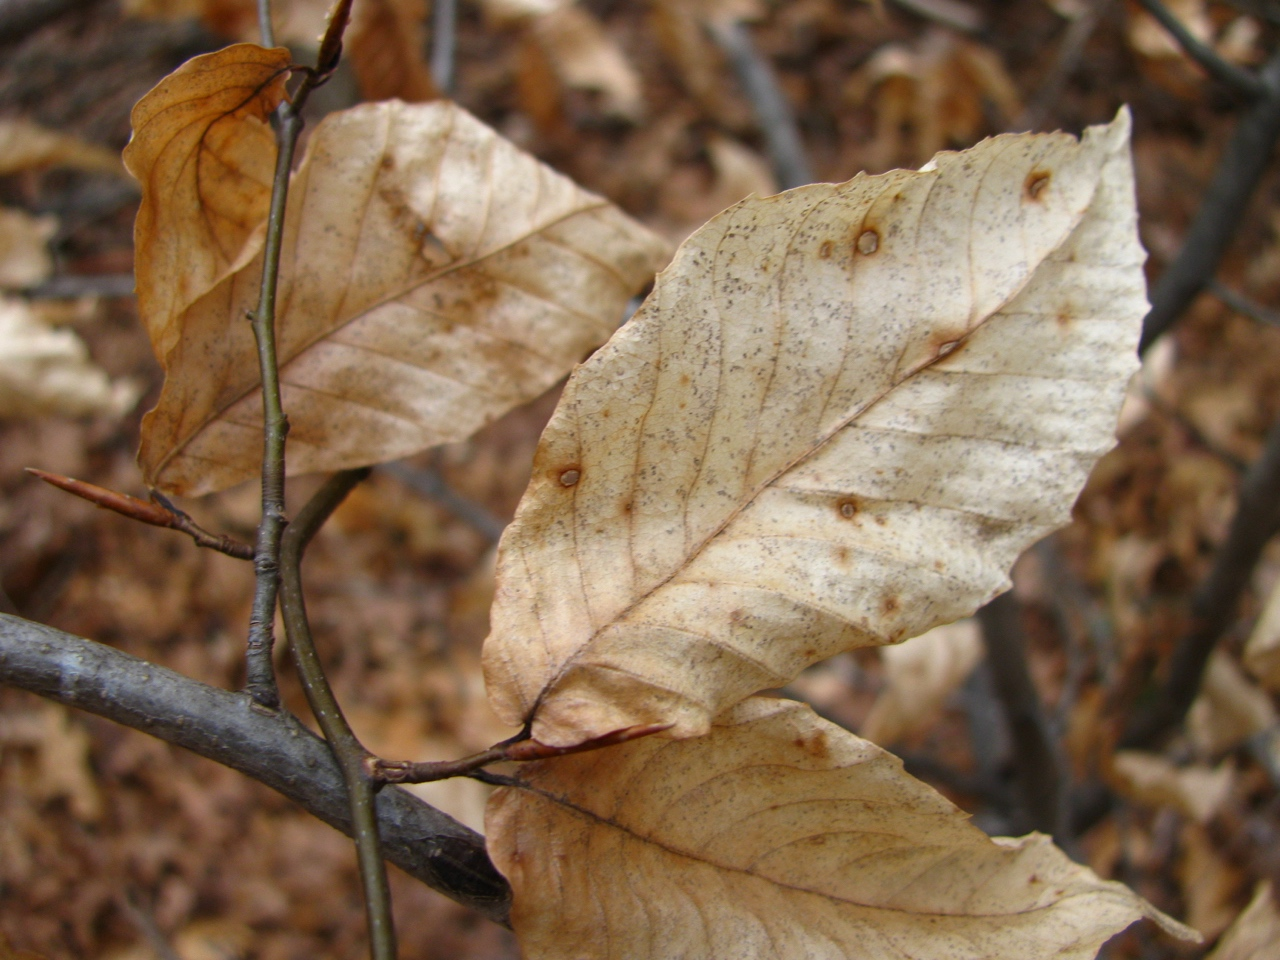 The Scientific Name is Fagus grandifolia. You will likely hear them called American Beech, Gray Beech, Red Beech, White Beech. This picture shows the Close-up of branches in winter of Fagus grandifolia